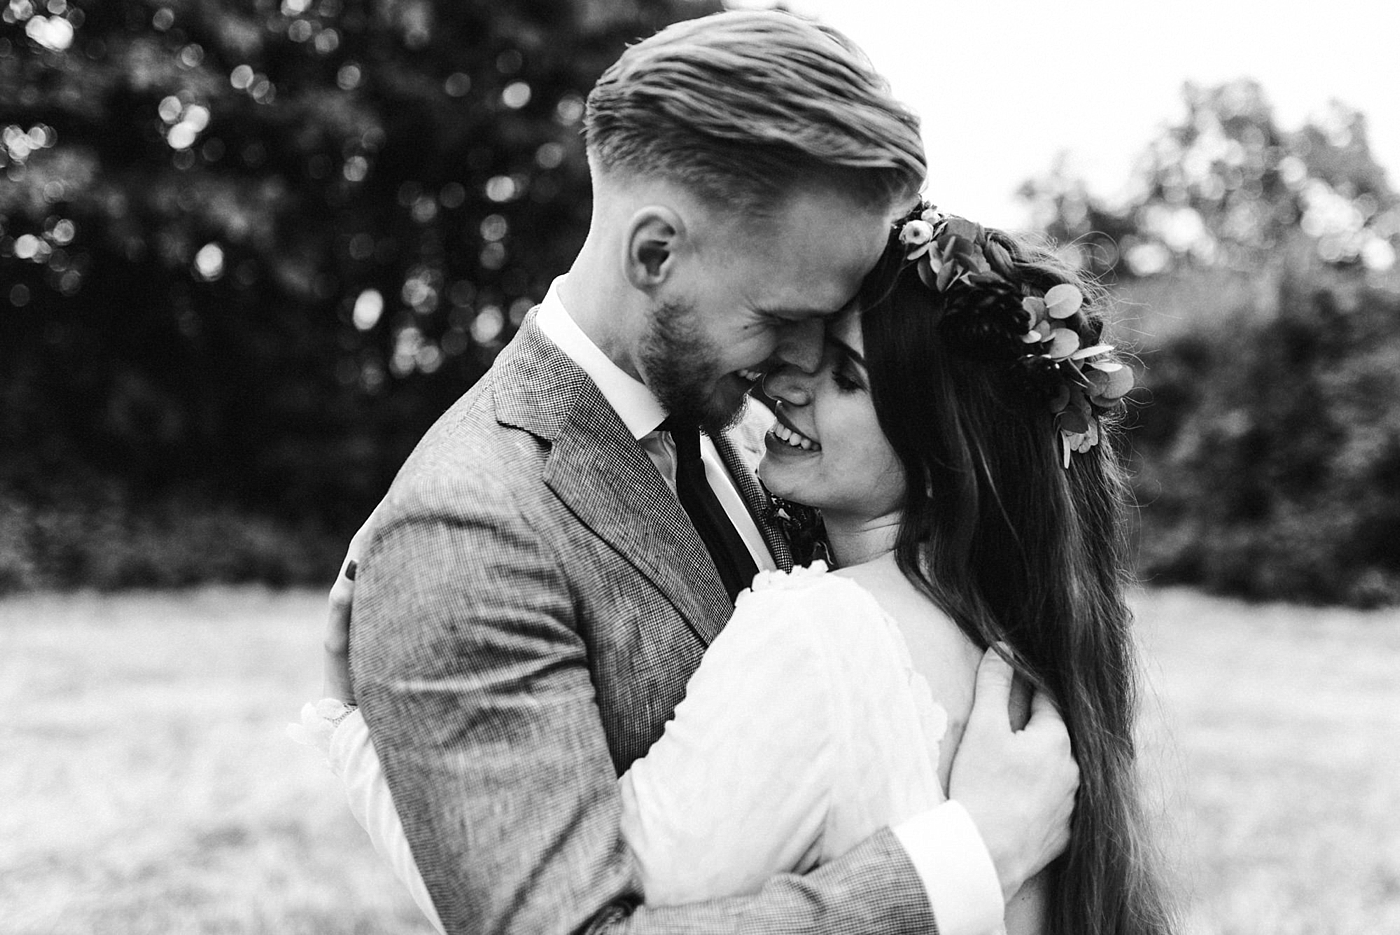 urban-elopement-wedding-218 Merve & Nils emotionales Elopement - Wedding Wesel & Schottlandurban elopement wedding 218 1